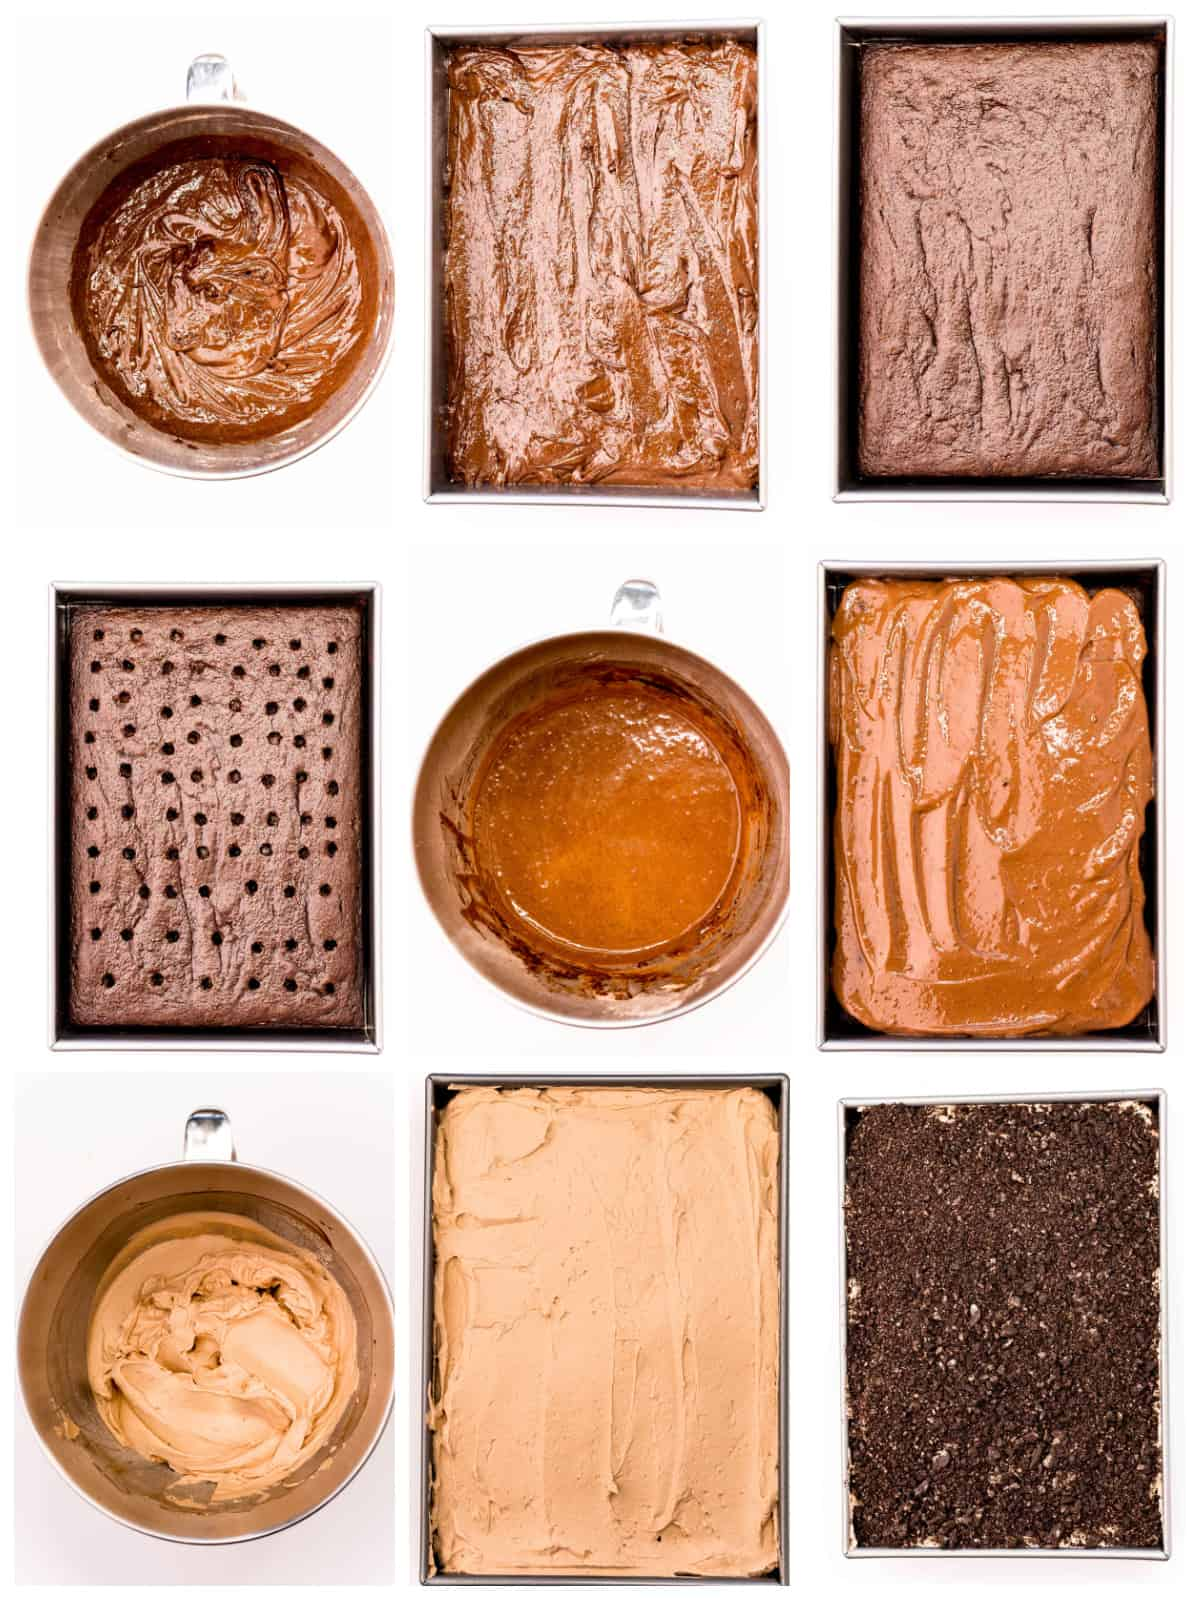 Step by step photos on how to make a Halloween Dirt Cake.